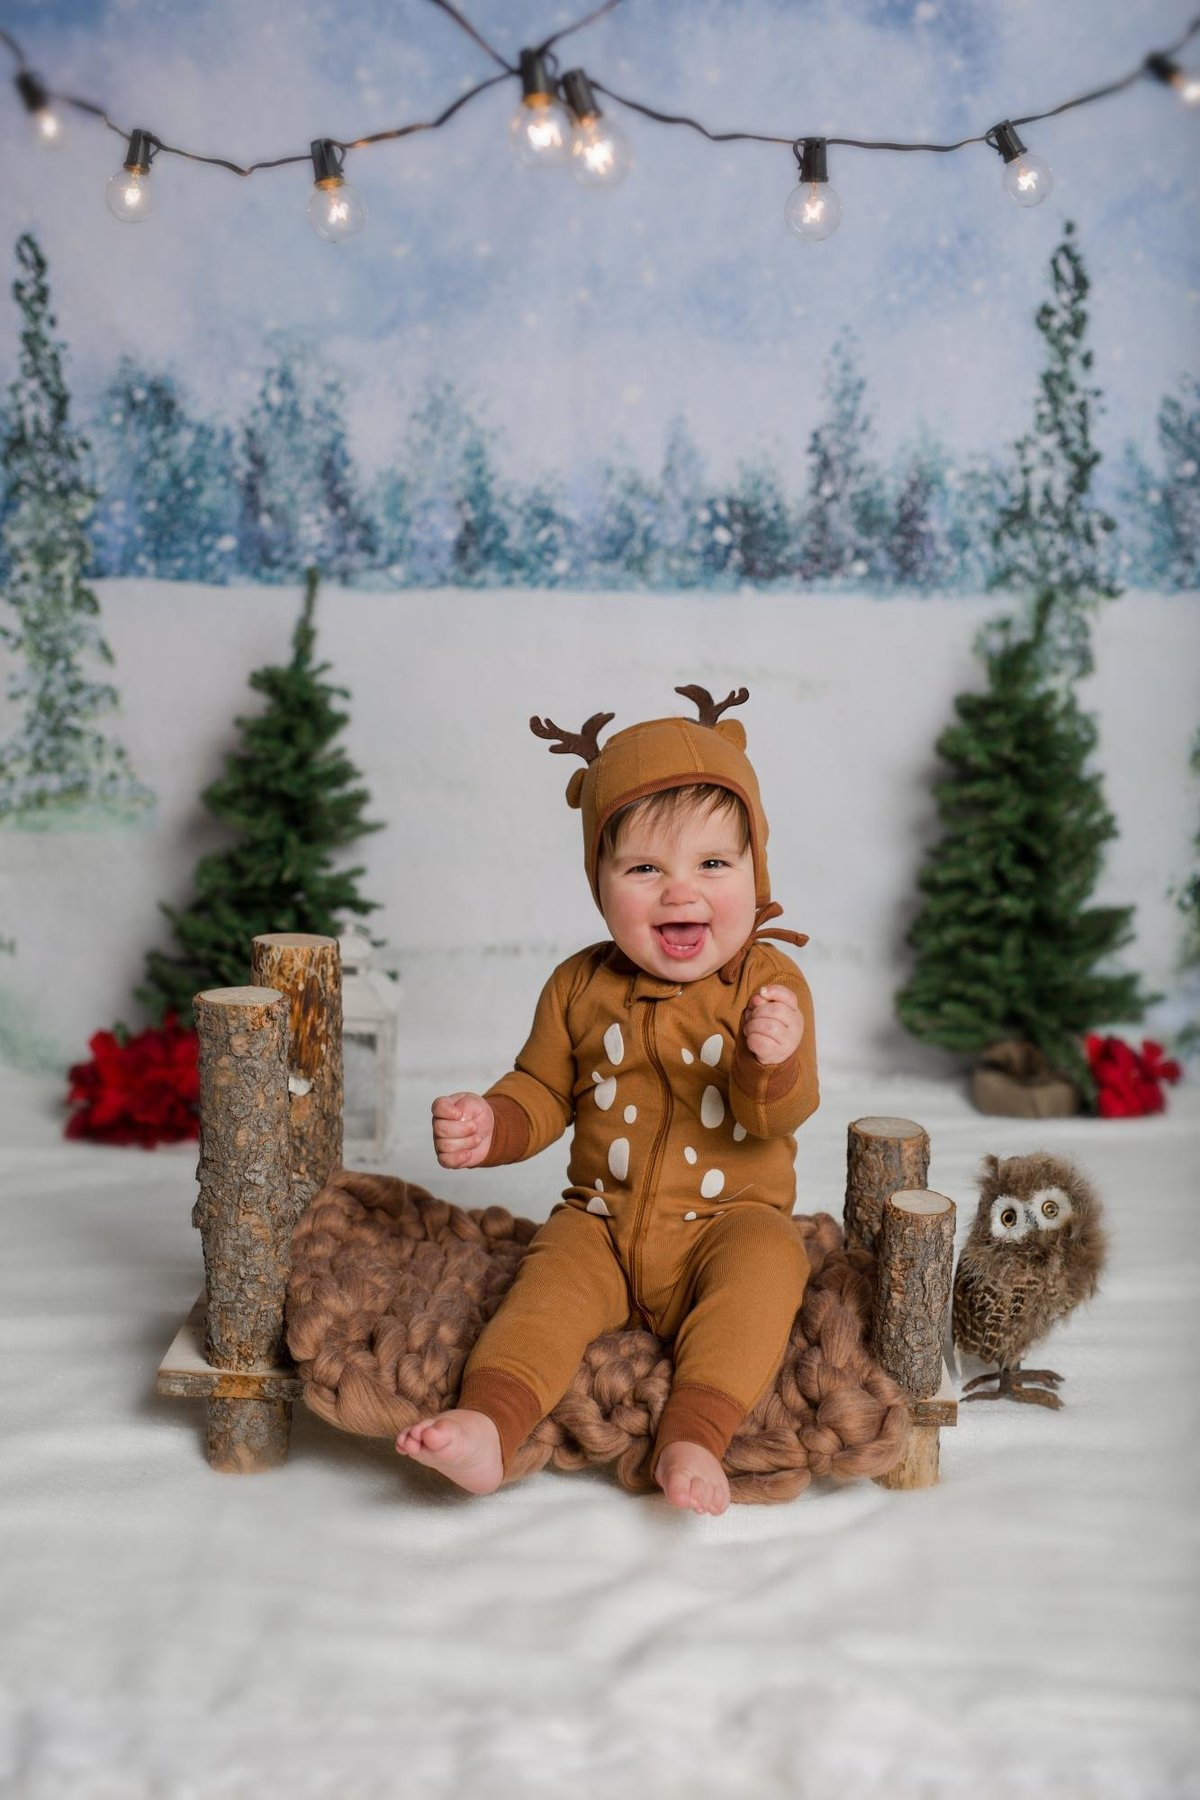 Boy dressed as Christmas Reindeer